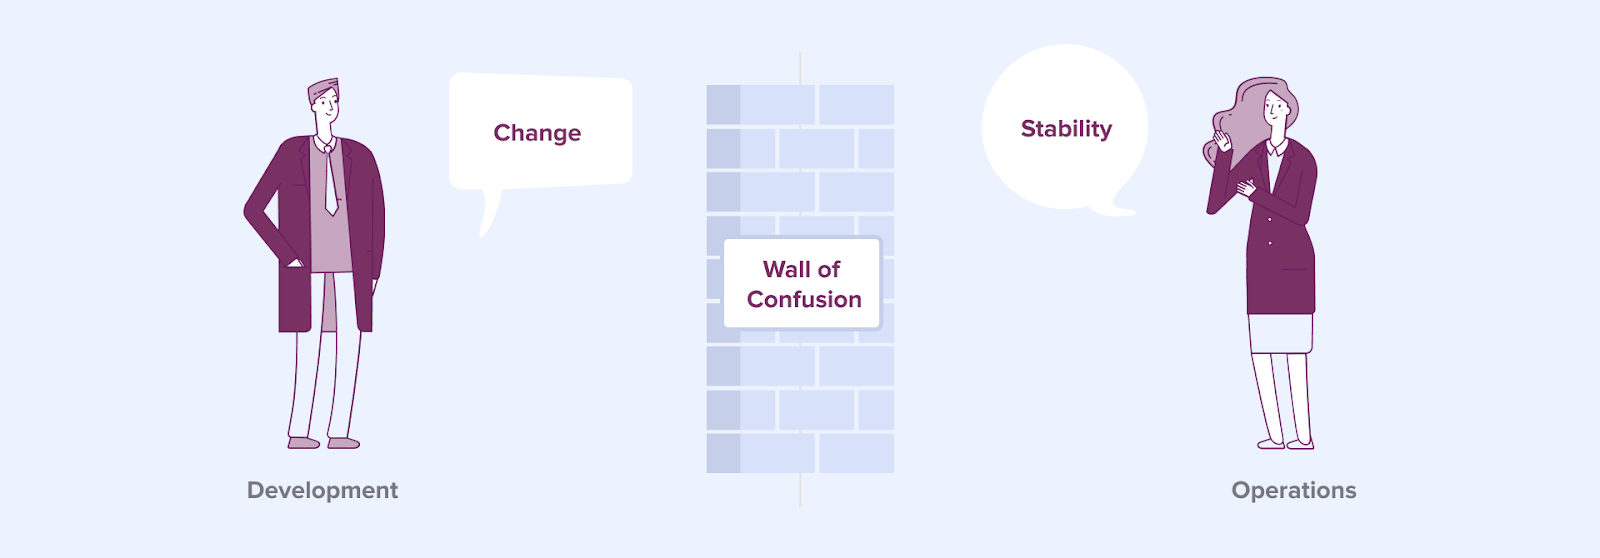 DevOps wall of confusion between development and operations